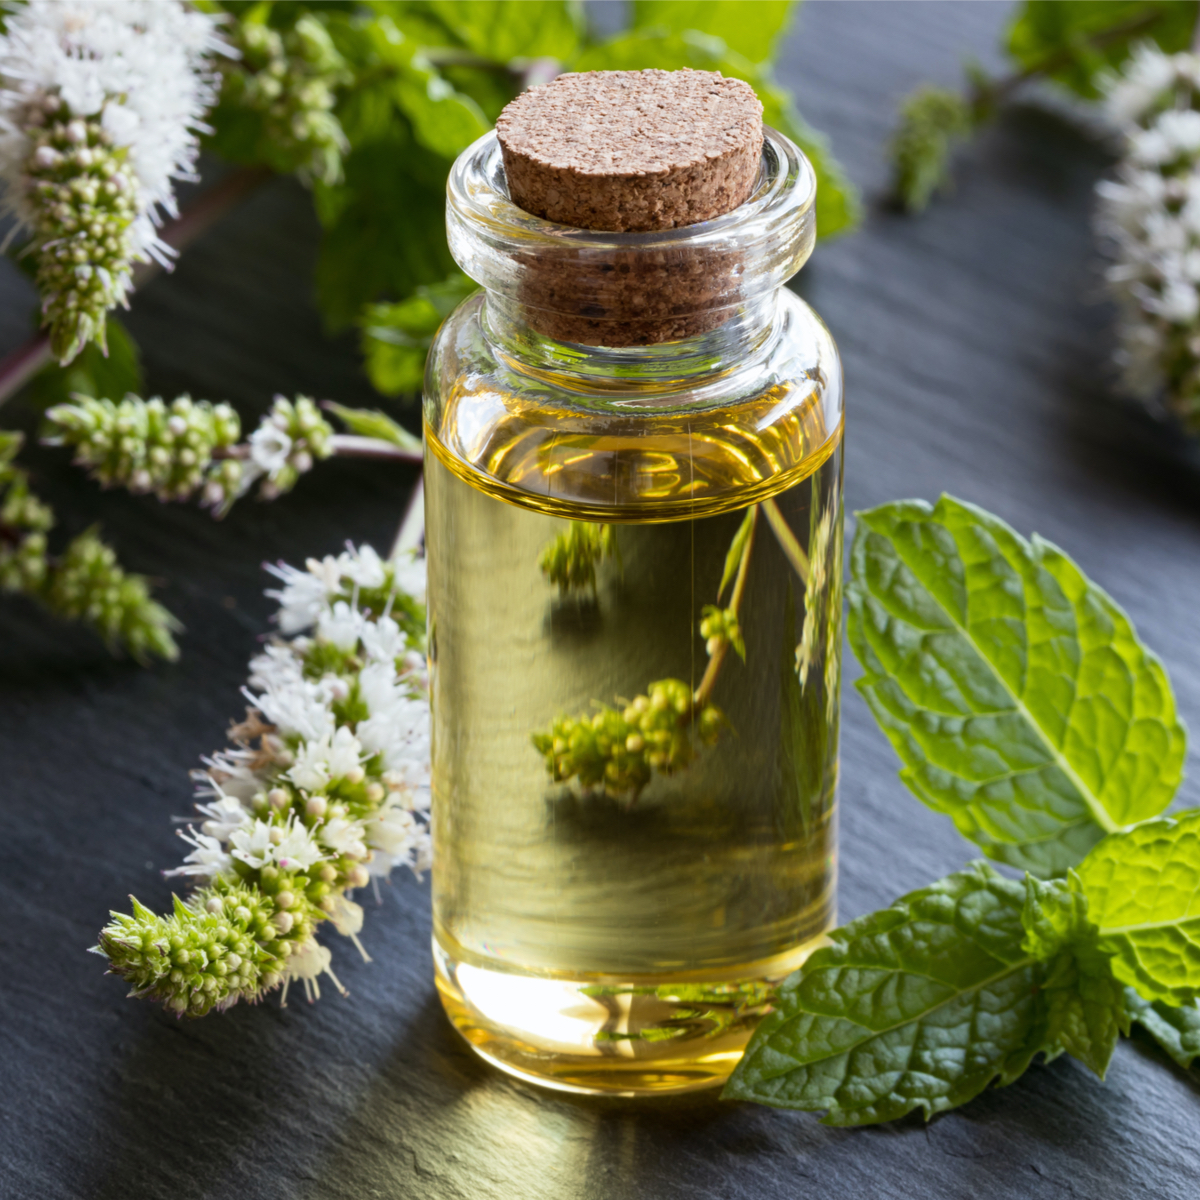 Peppermint essential oil used in our foot care products